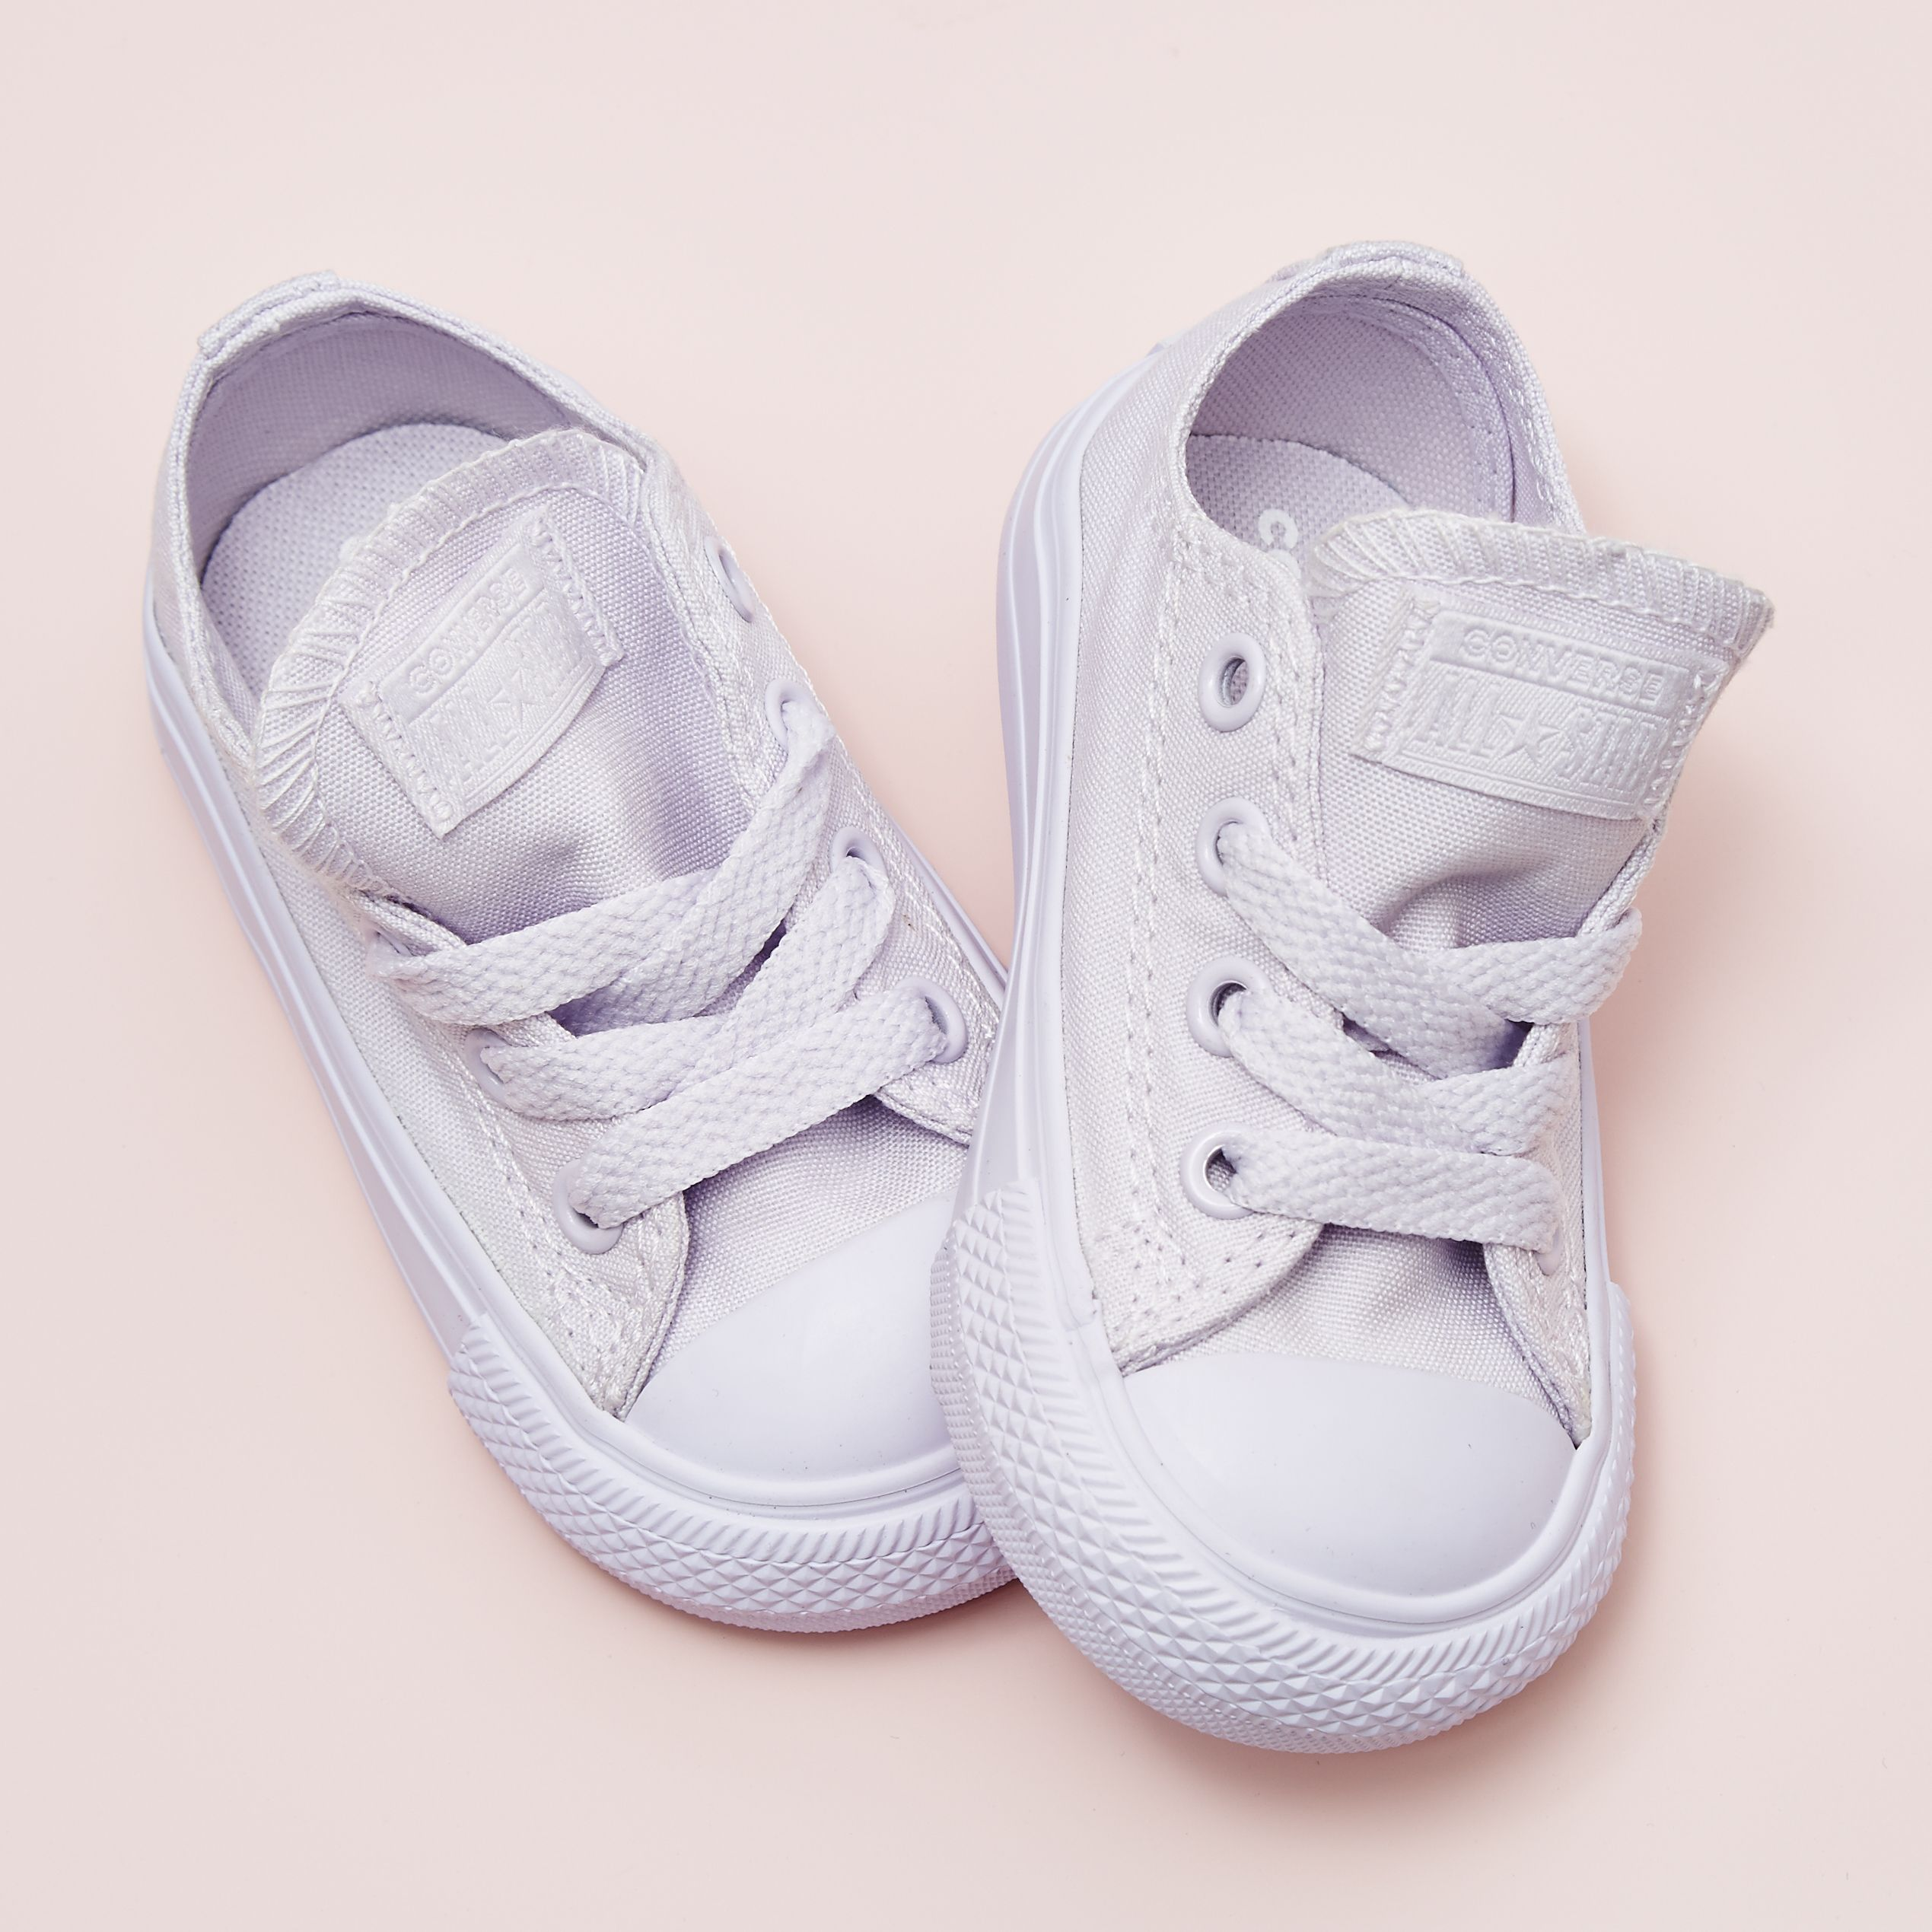 2fd2e6401324 We re just going to leave these cuties here........💘  converse All Star  Low Infant Trainers in Barely Grape Mono  Exclusive  kids  converse  friyay